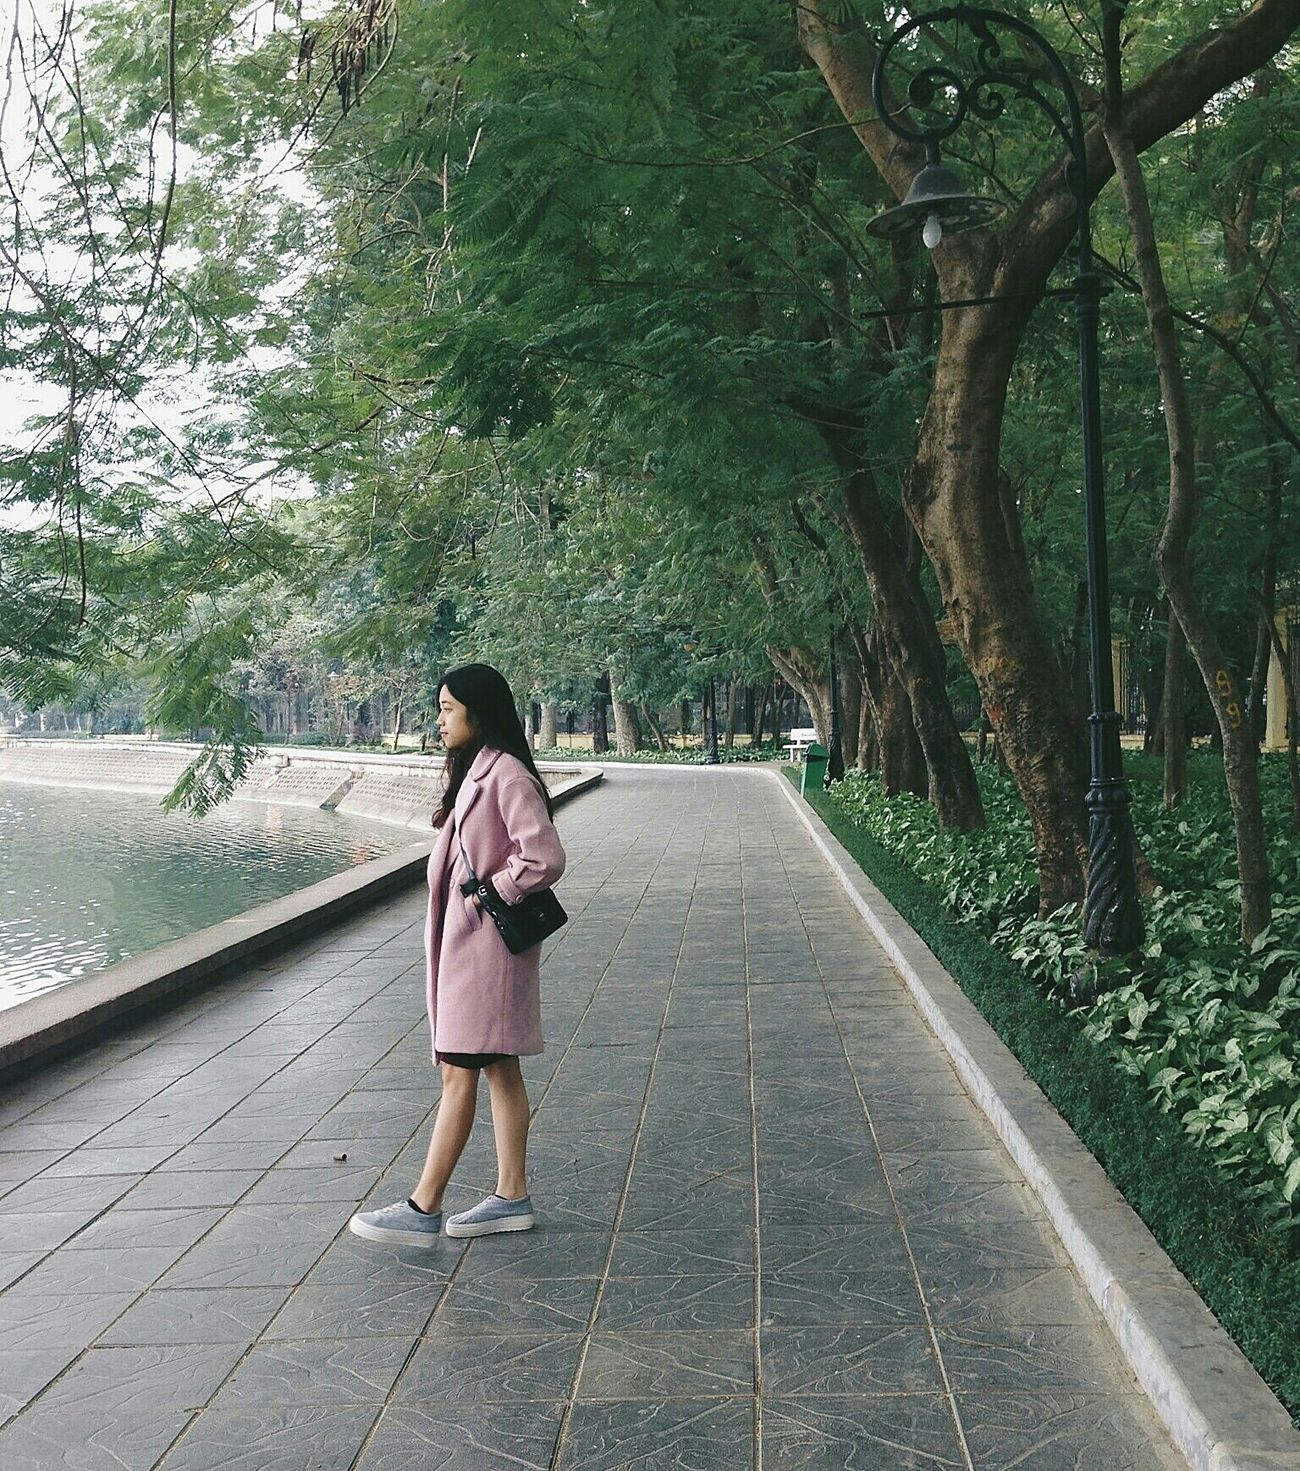 Tree Outdoors Day Girl Happymoments Plant Green Color Woman Of EyeEm Lifestyles Hanoian Vietnamphotography Nature Tree Park Outfit Ootd Streetstyle Fashion